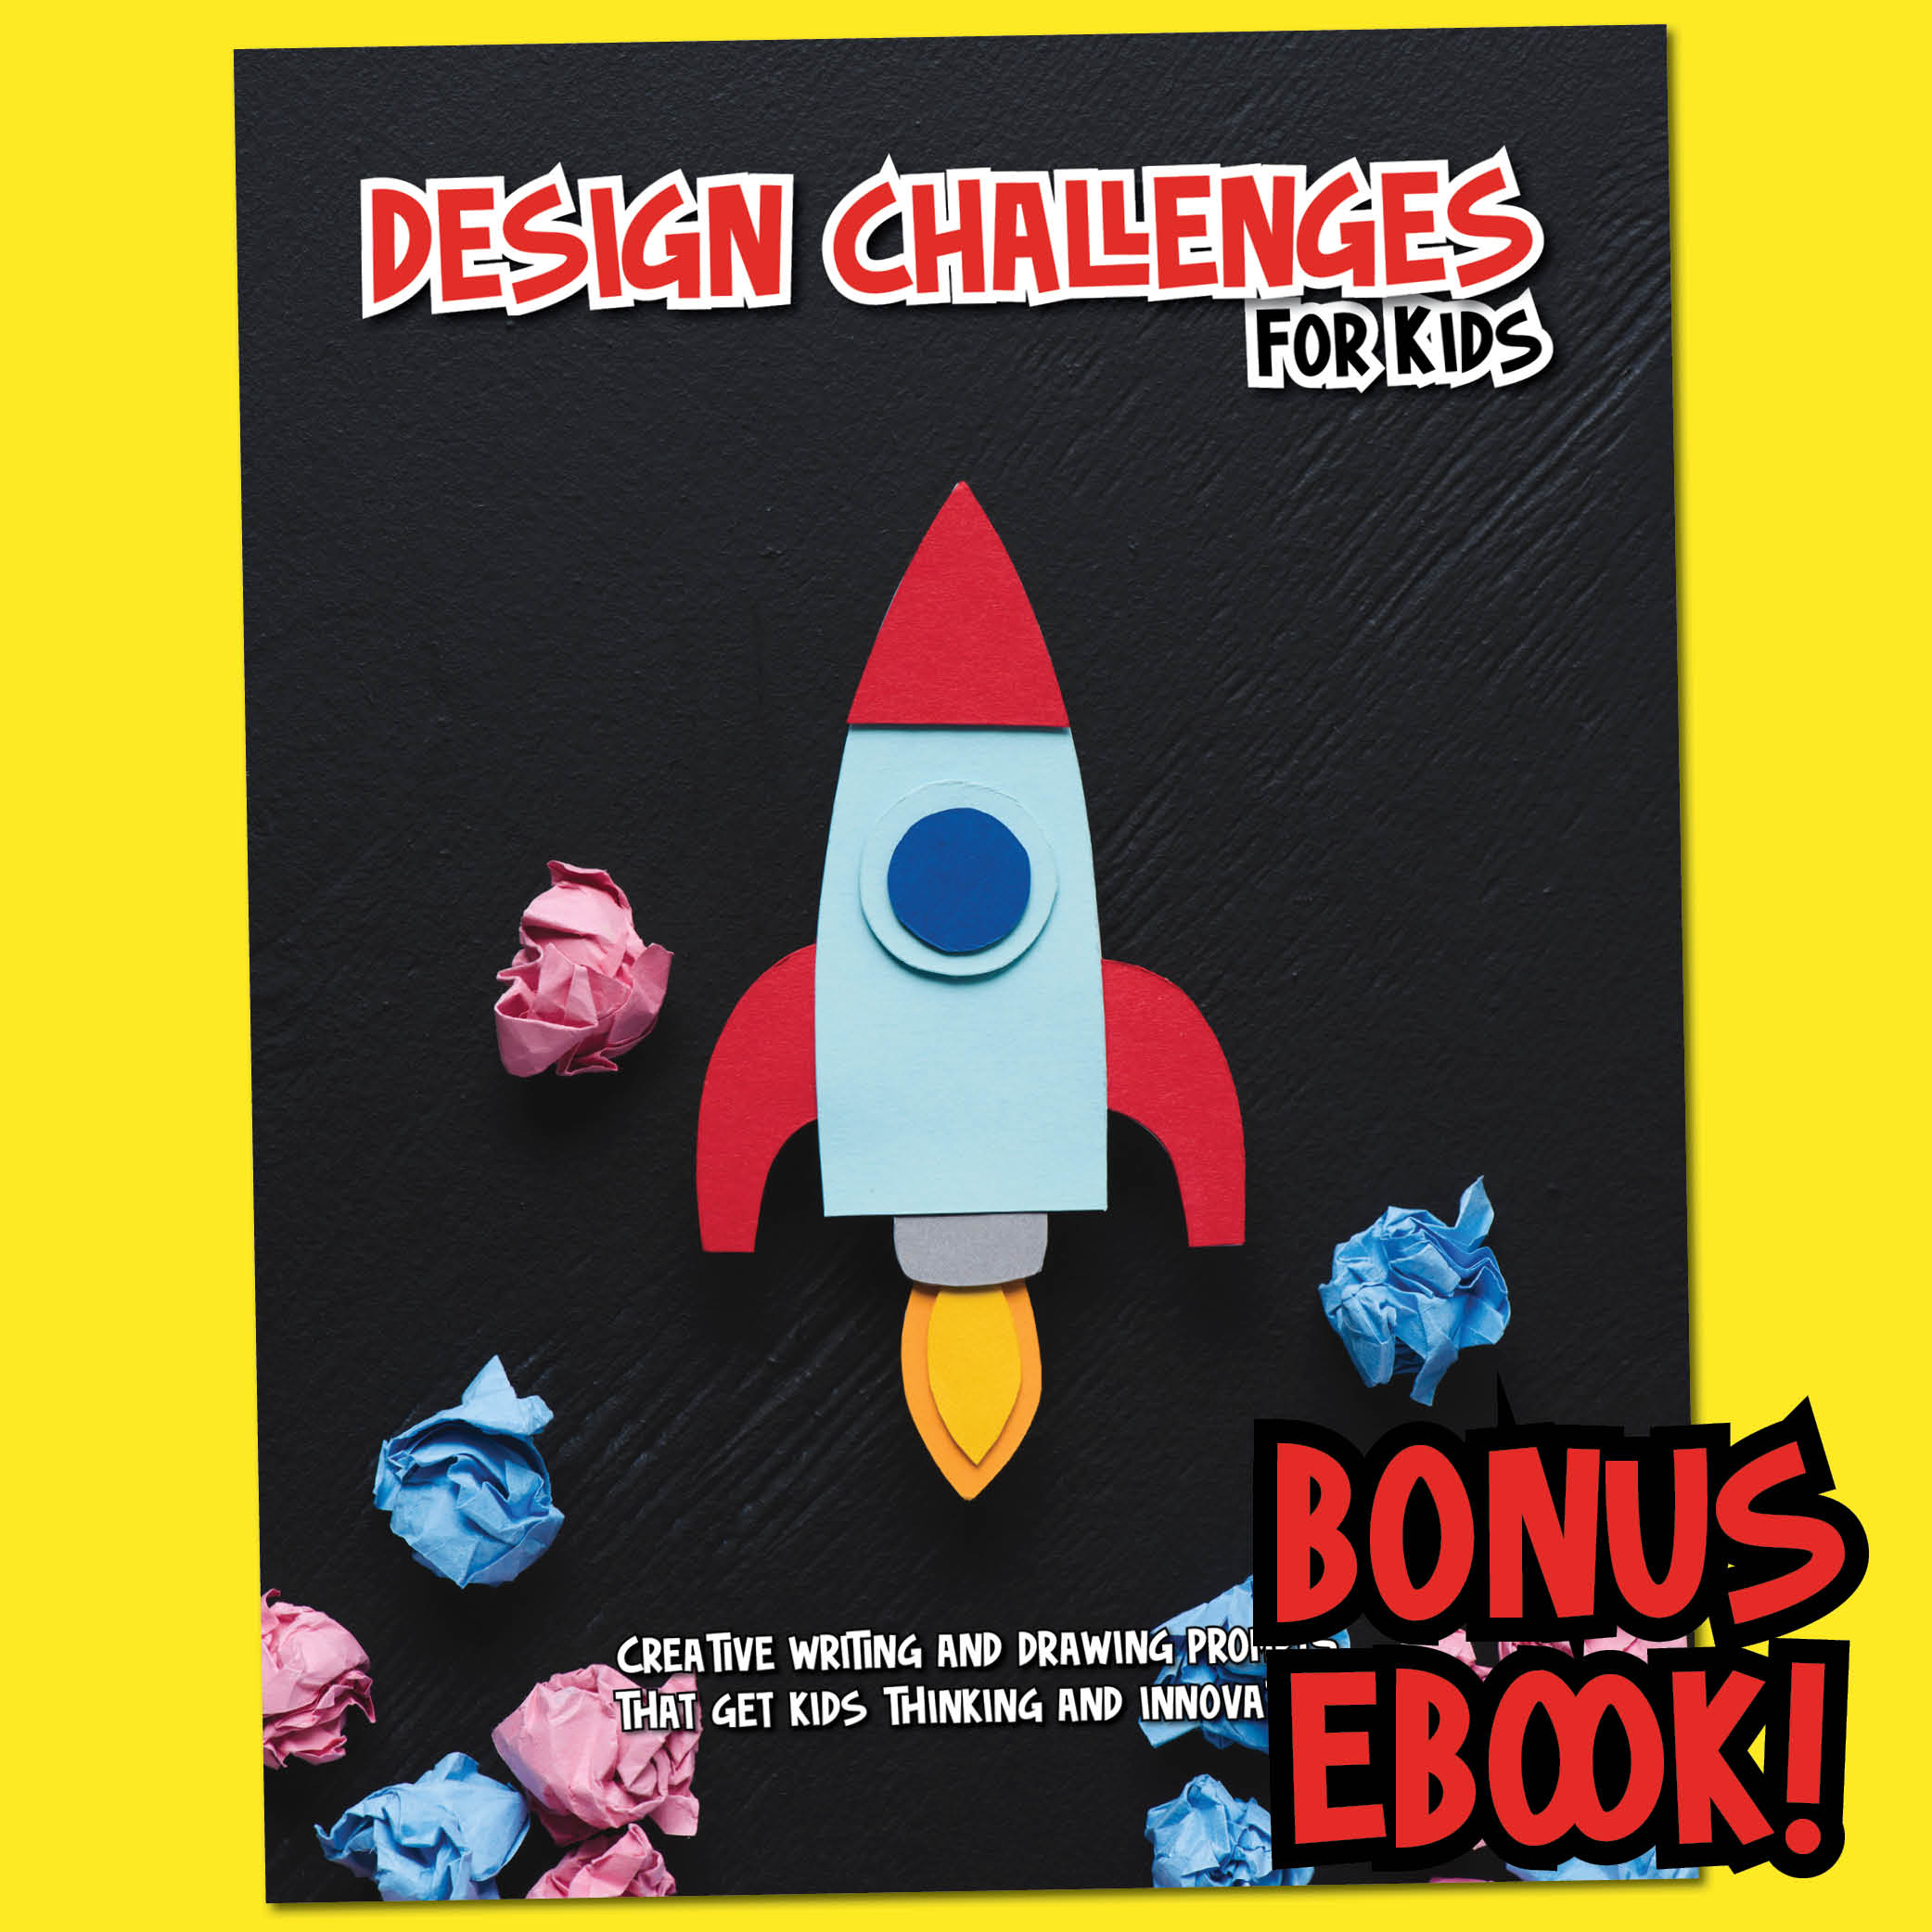 Design Challenges on Yellow v2